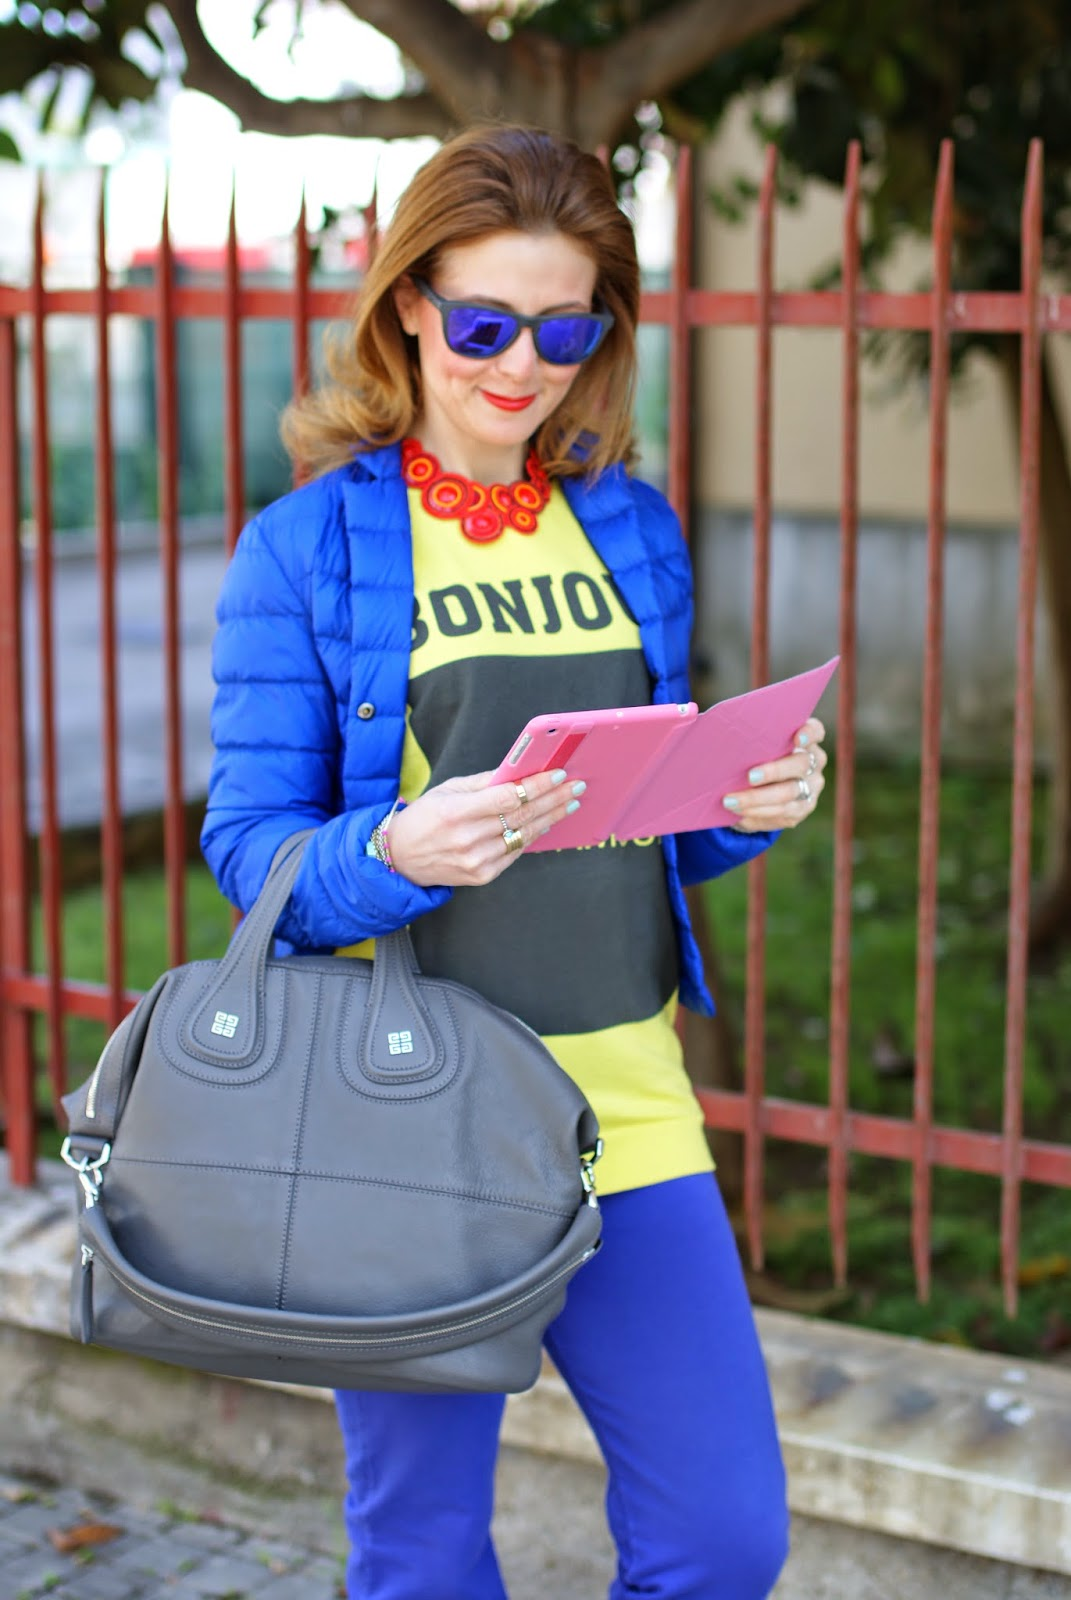 Nike free run 5.0 trainers, Givenchy Nightingale bag, Ozaki icoat cover, sporty look, fashion and Cookies, fashion blogger